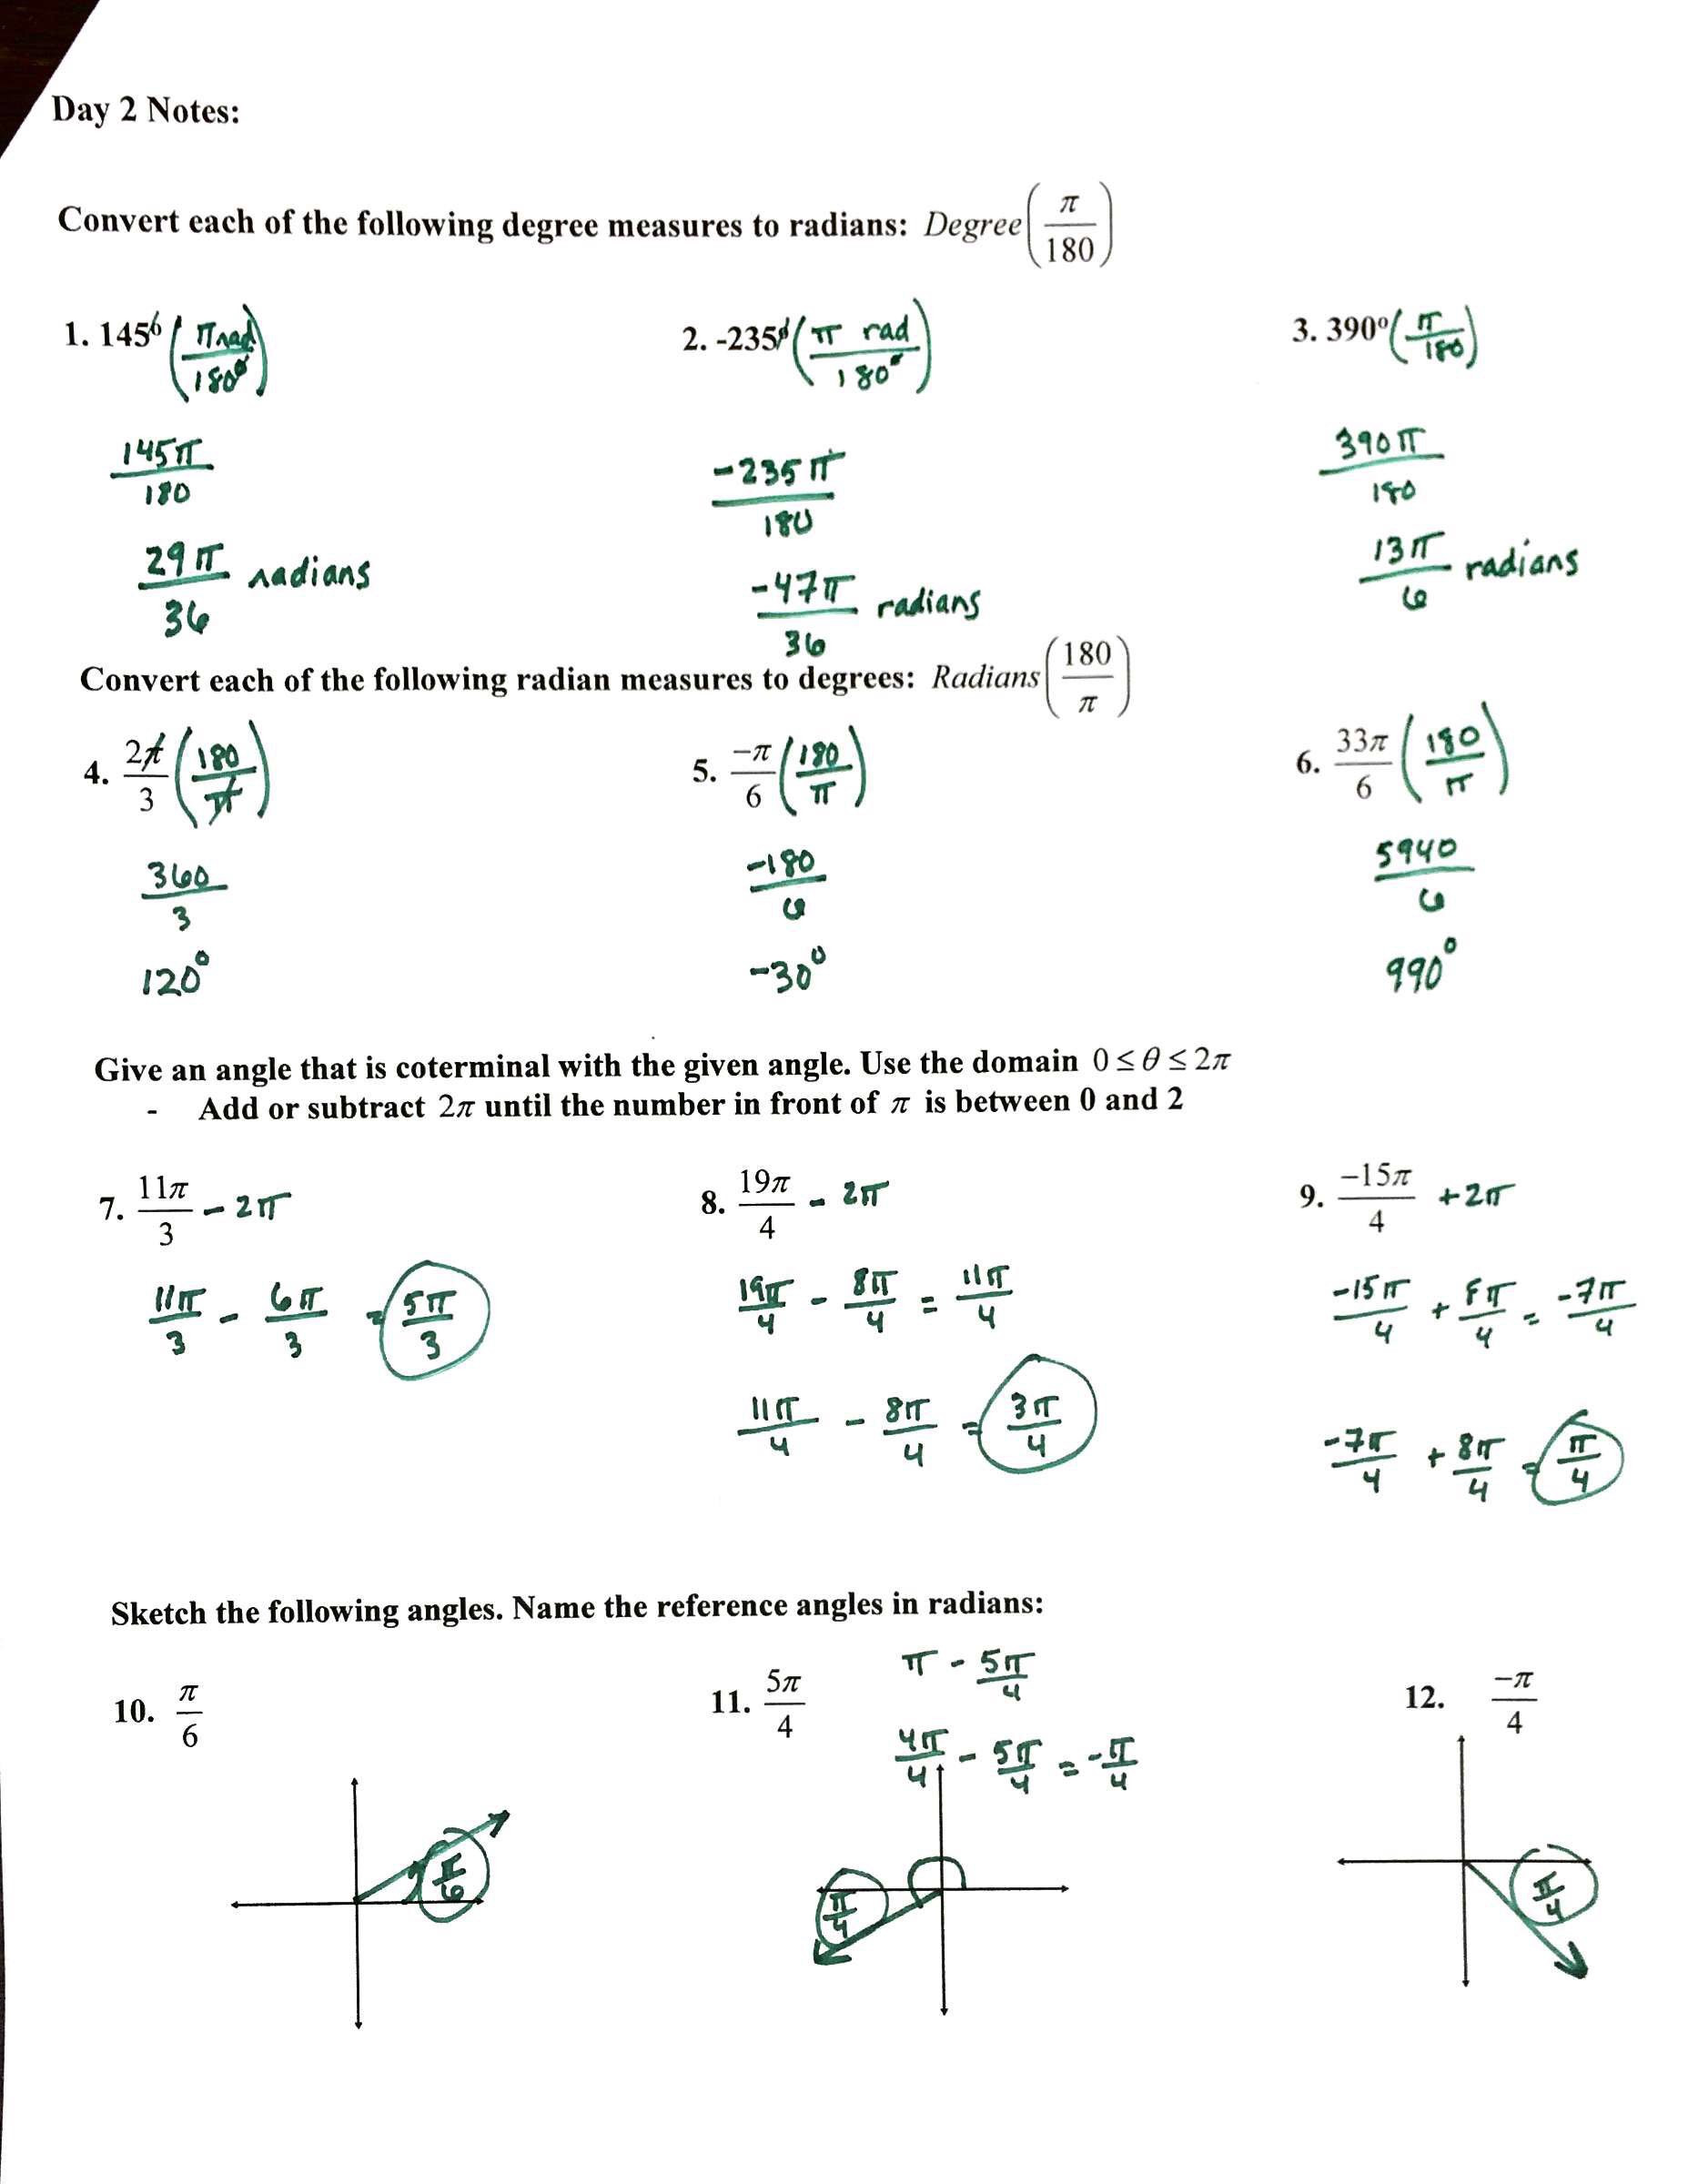 day 2 notes converting and sketching in radians